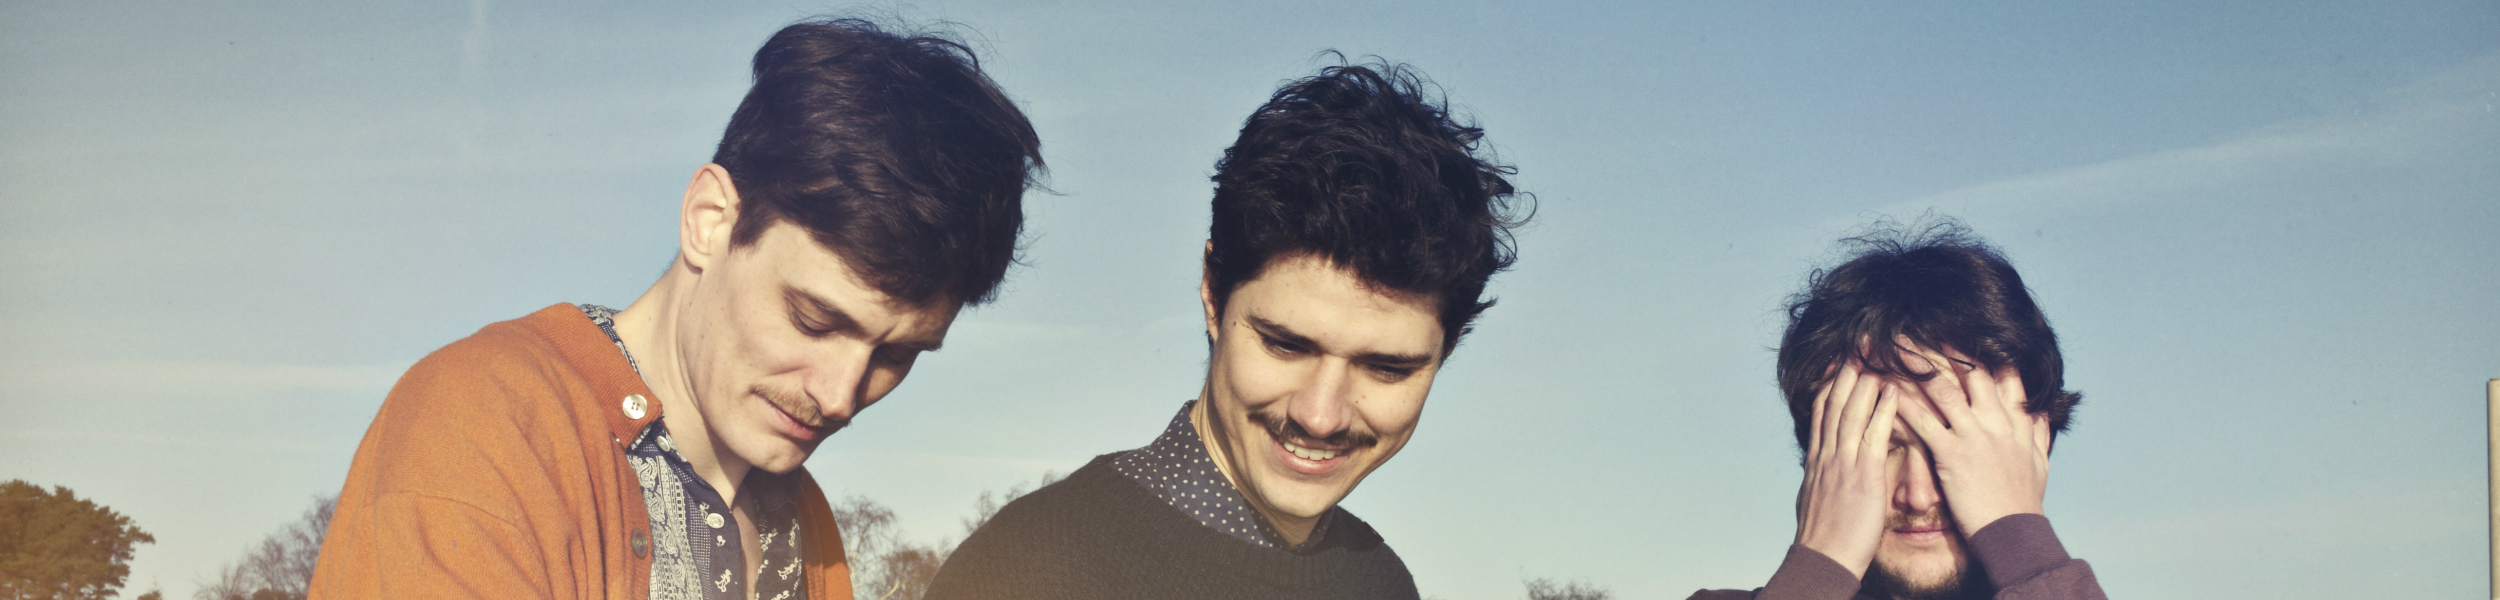 Efterklang - Efterklang: Download 'Raincoats' today